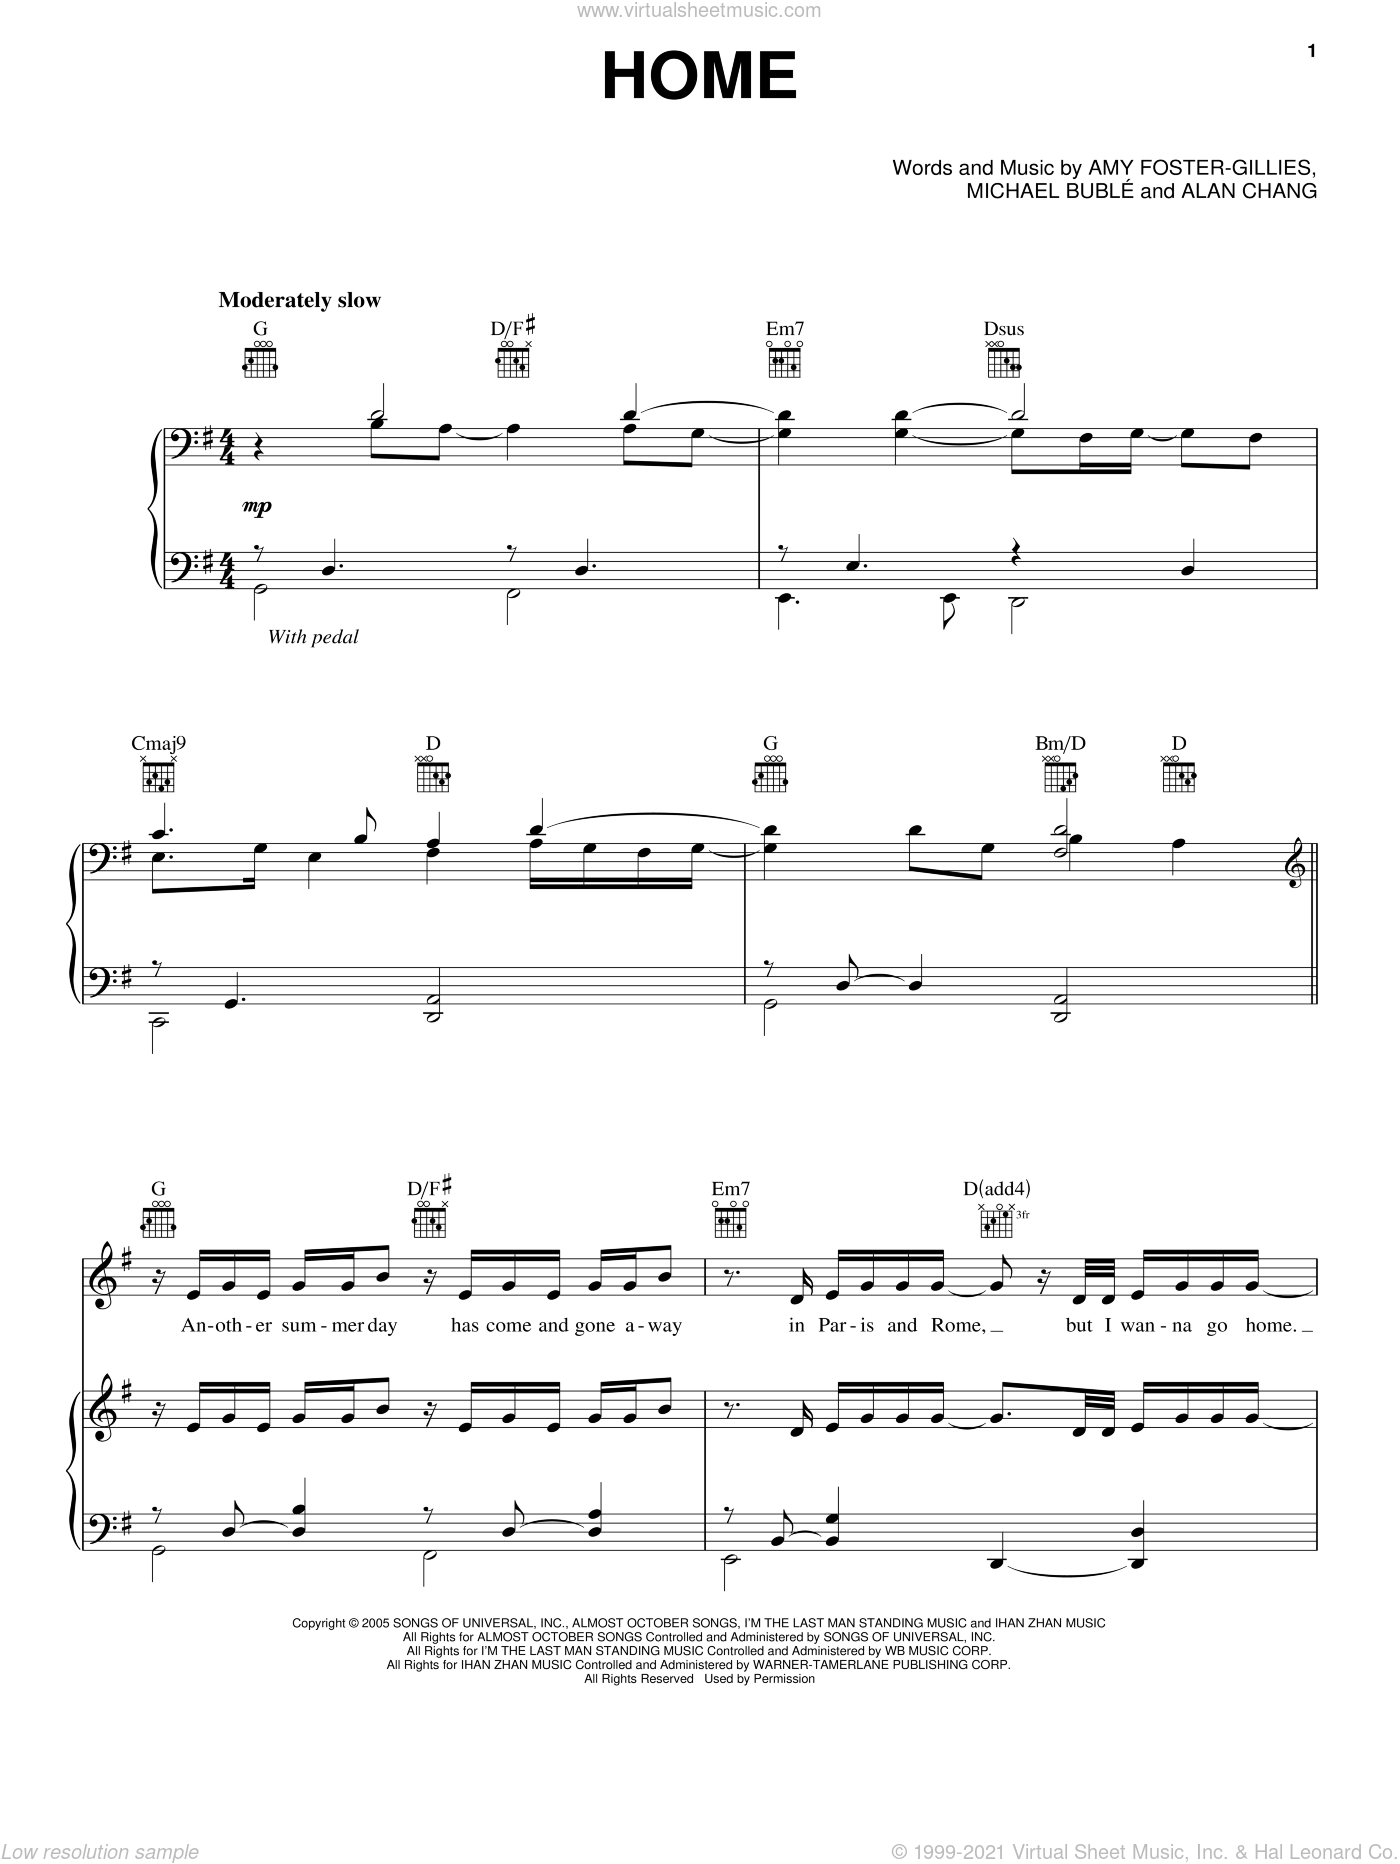 Home sheet music for voice and piano by Michael Bublé